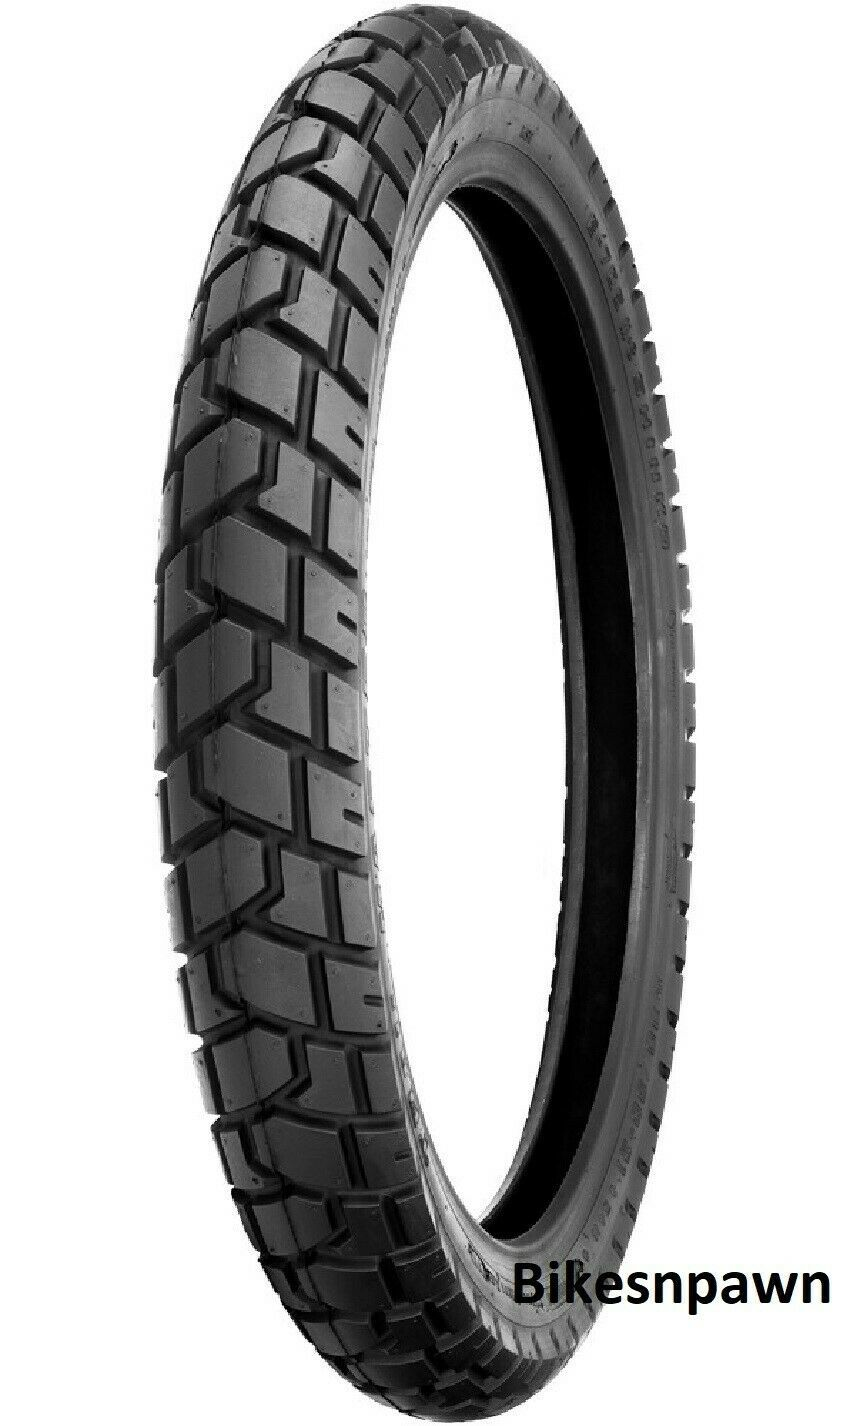 New 90/90-21 TL Shinko 705 Series Dual Sport Front Motorcycle Tire 54H